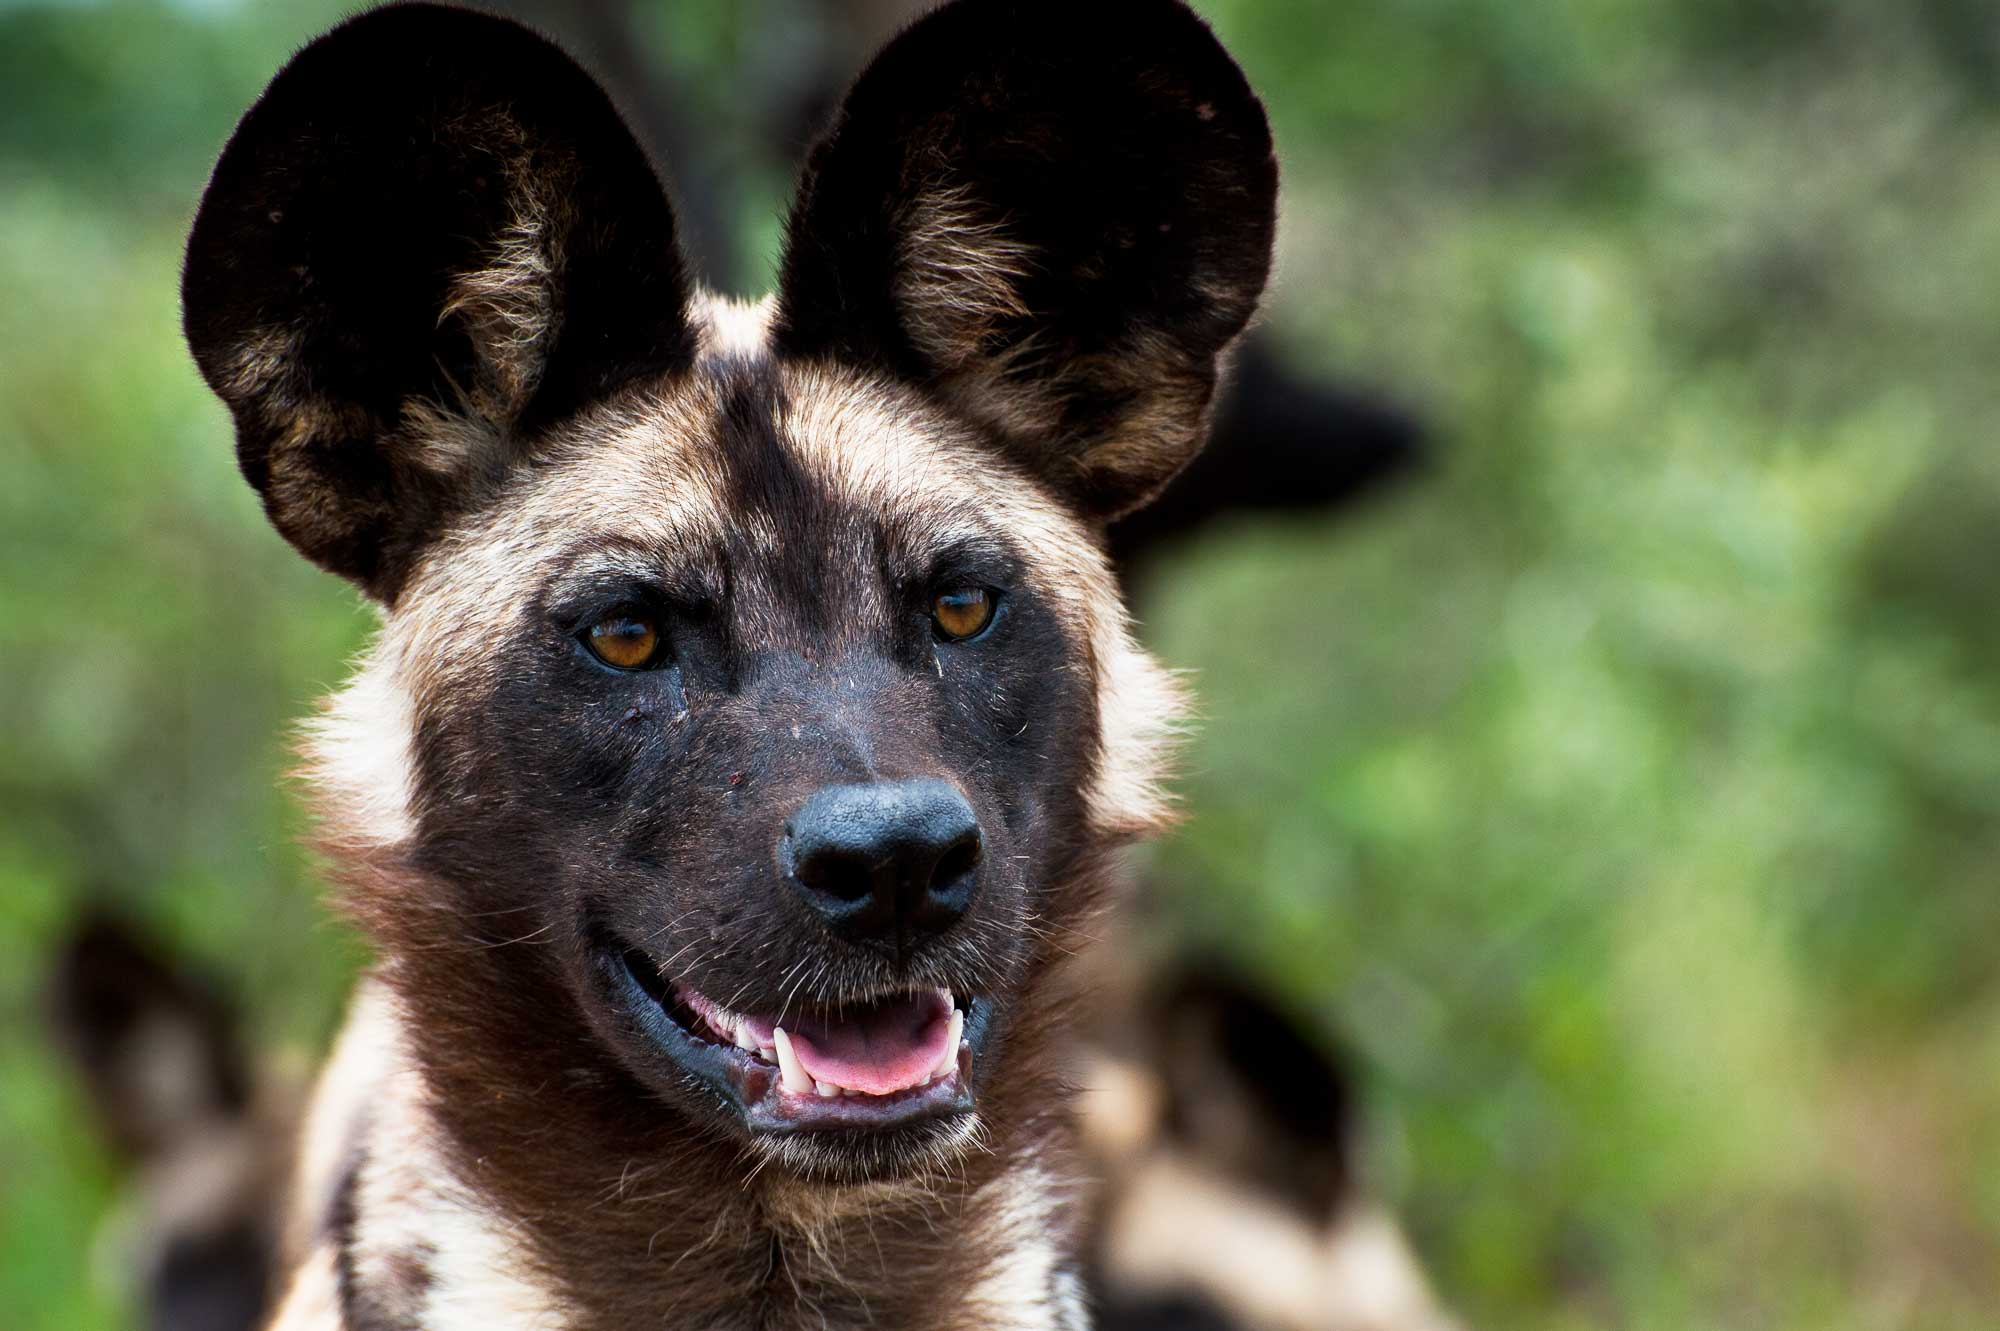 African wild dog now a protected species in Namibia - Travel News ...